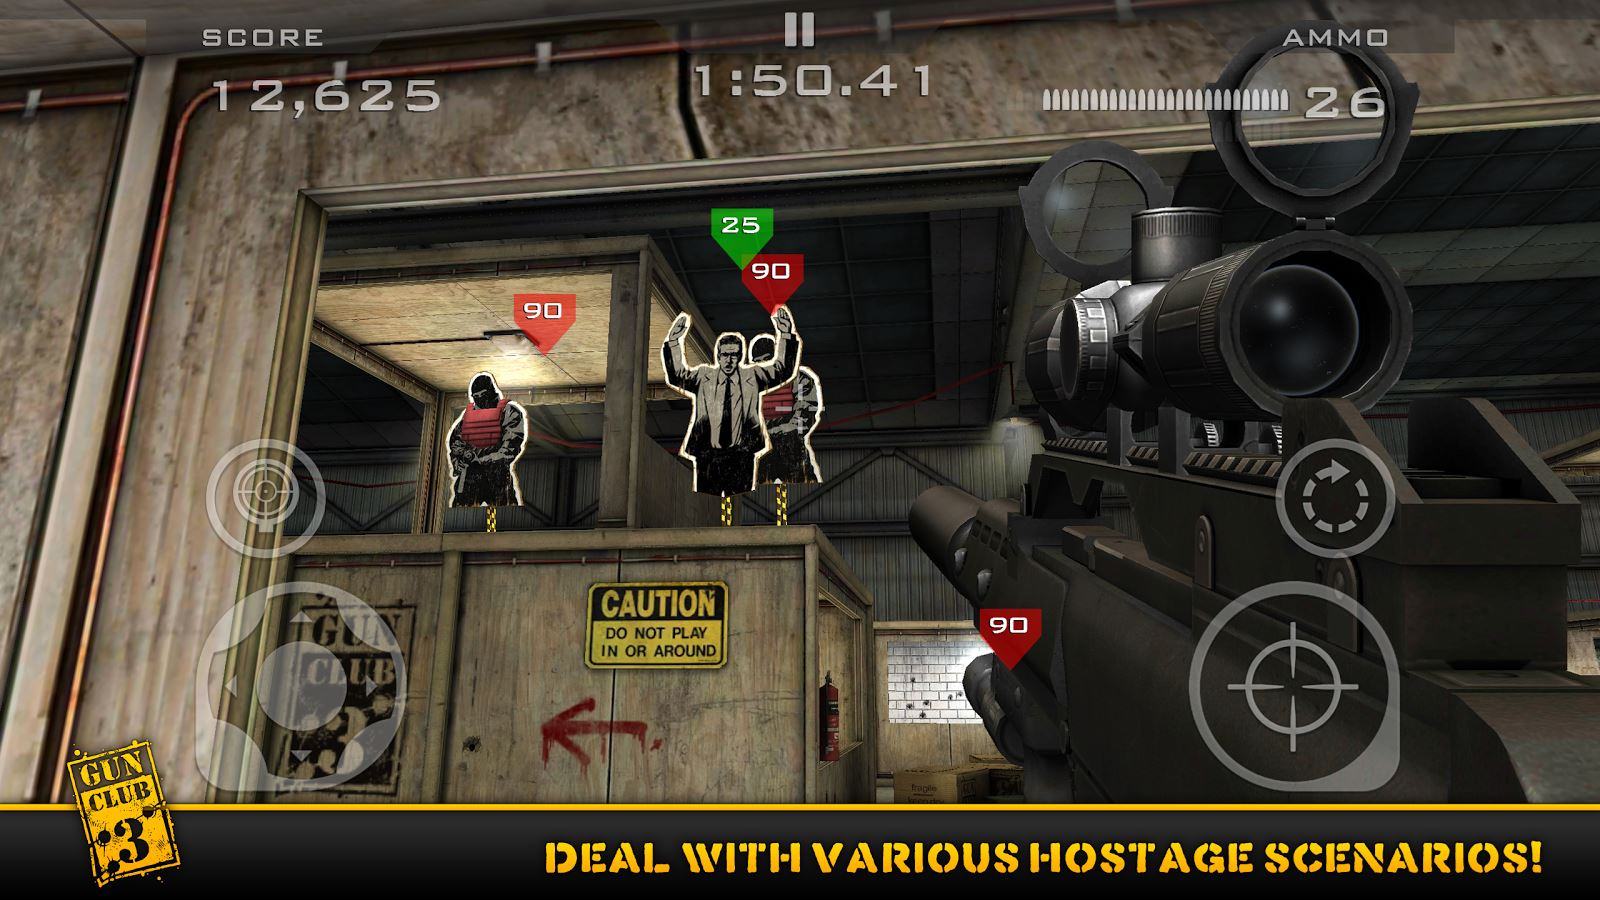 Gun Club 3: Virtual Weapon Sim - Imagem 1 do software